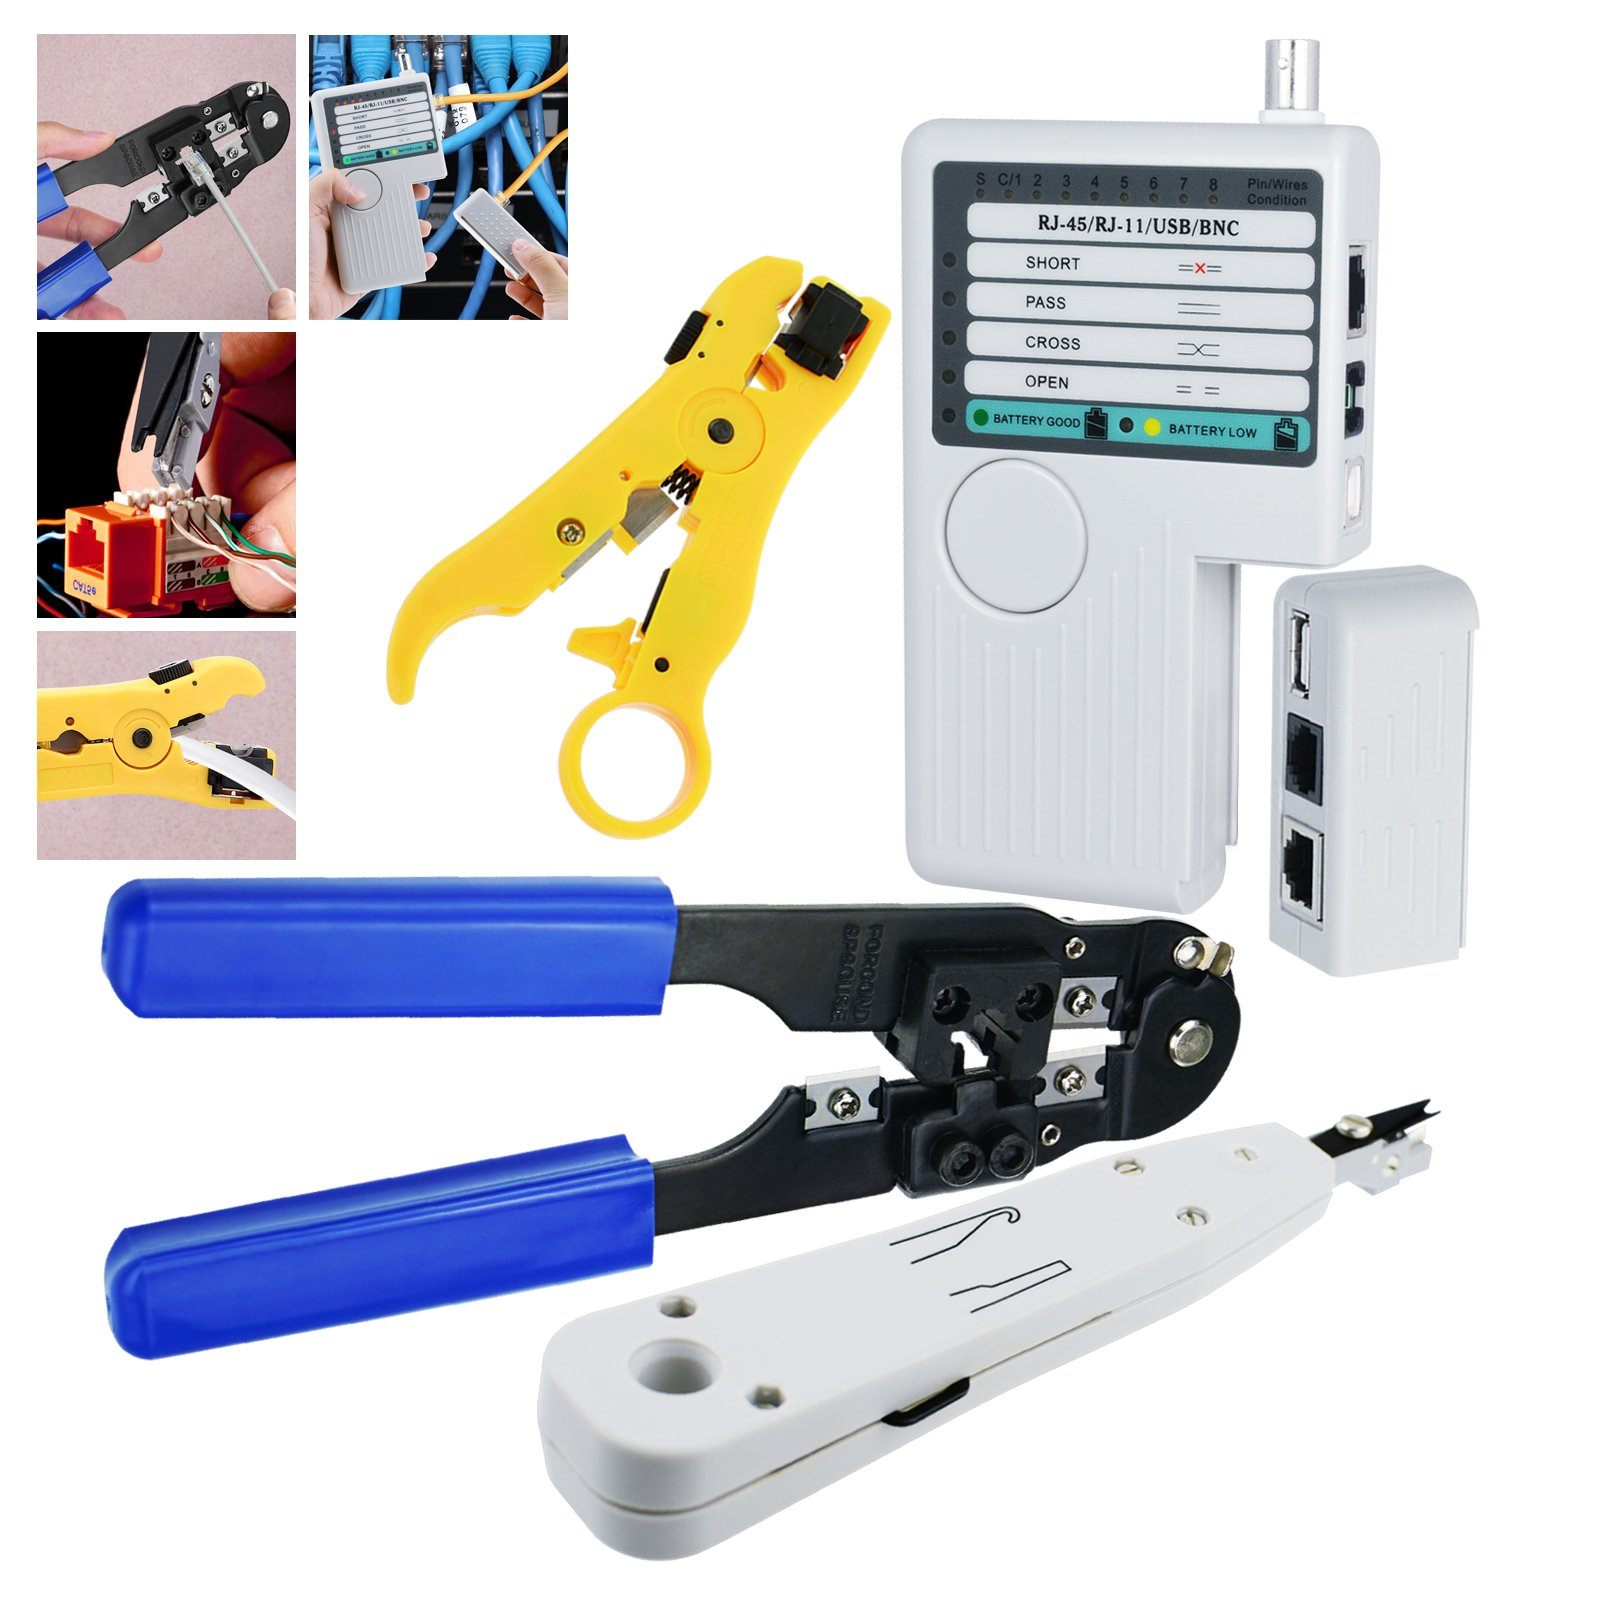 Professional Network Lan Cable Tester Kit Rj45 Plug Crimping Tool A Wiring And Is Used To This Toolkit Consists Of 4 Parts In 1 Wire Stripper Punch Down The Combination